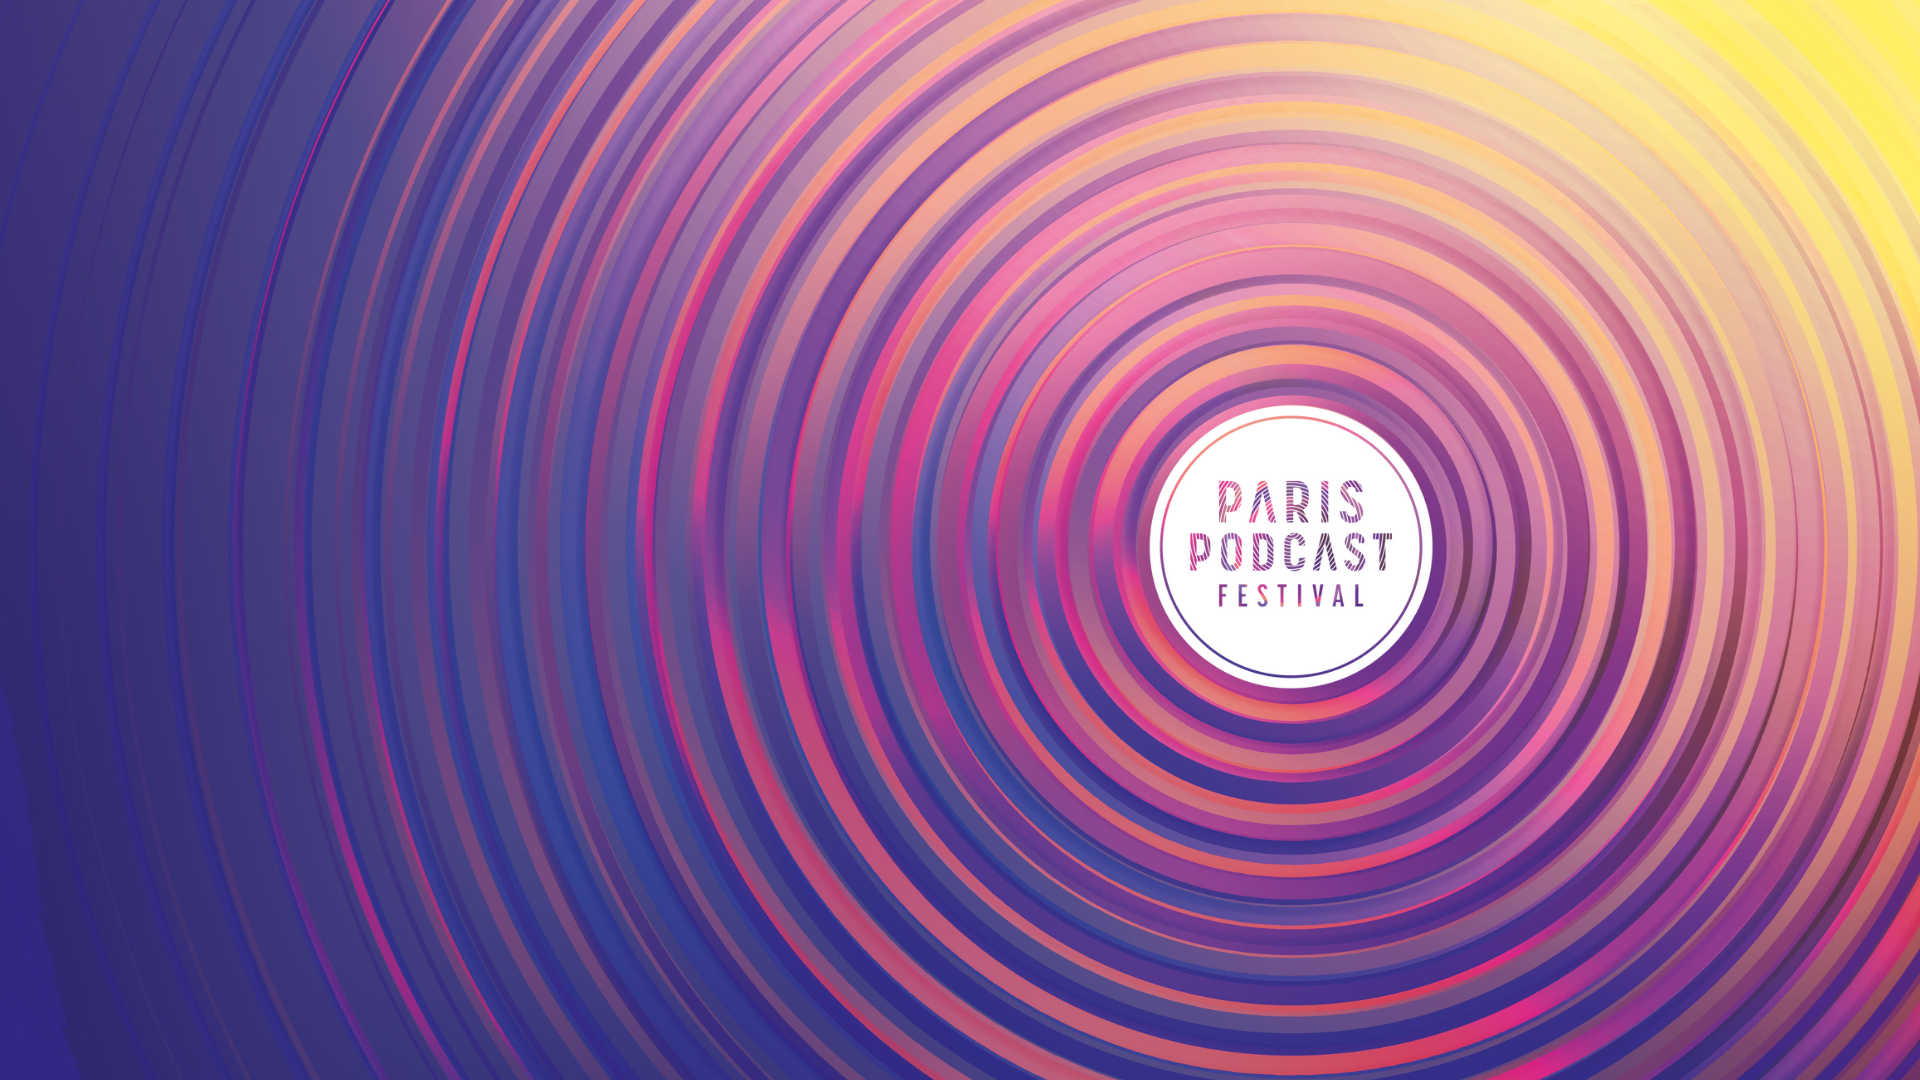 Paris Podcast Festival 2020